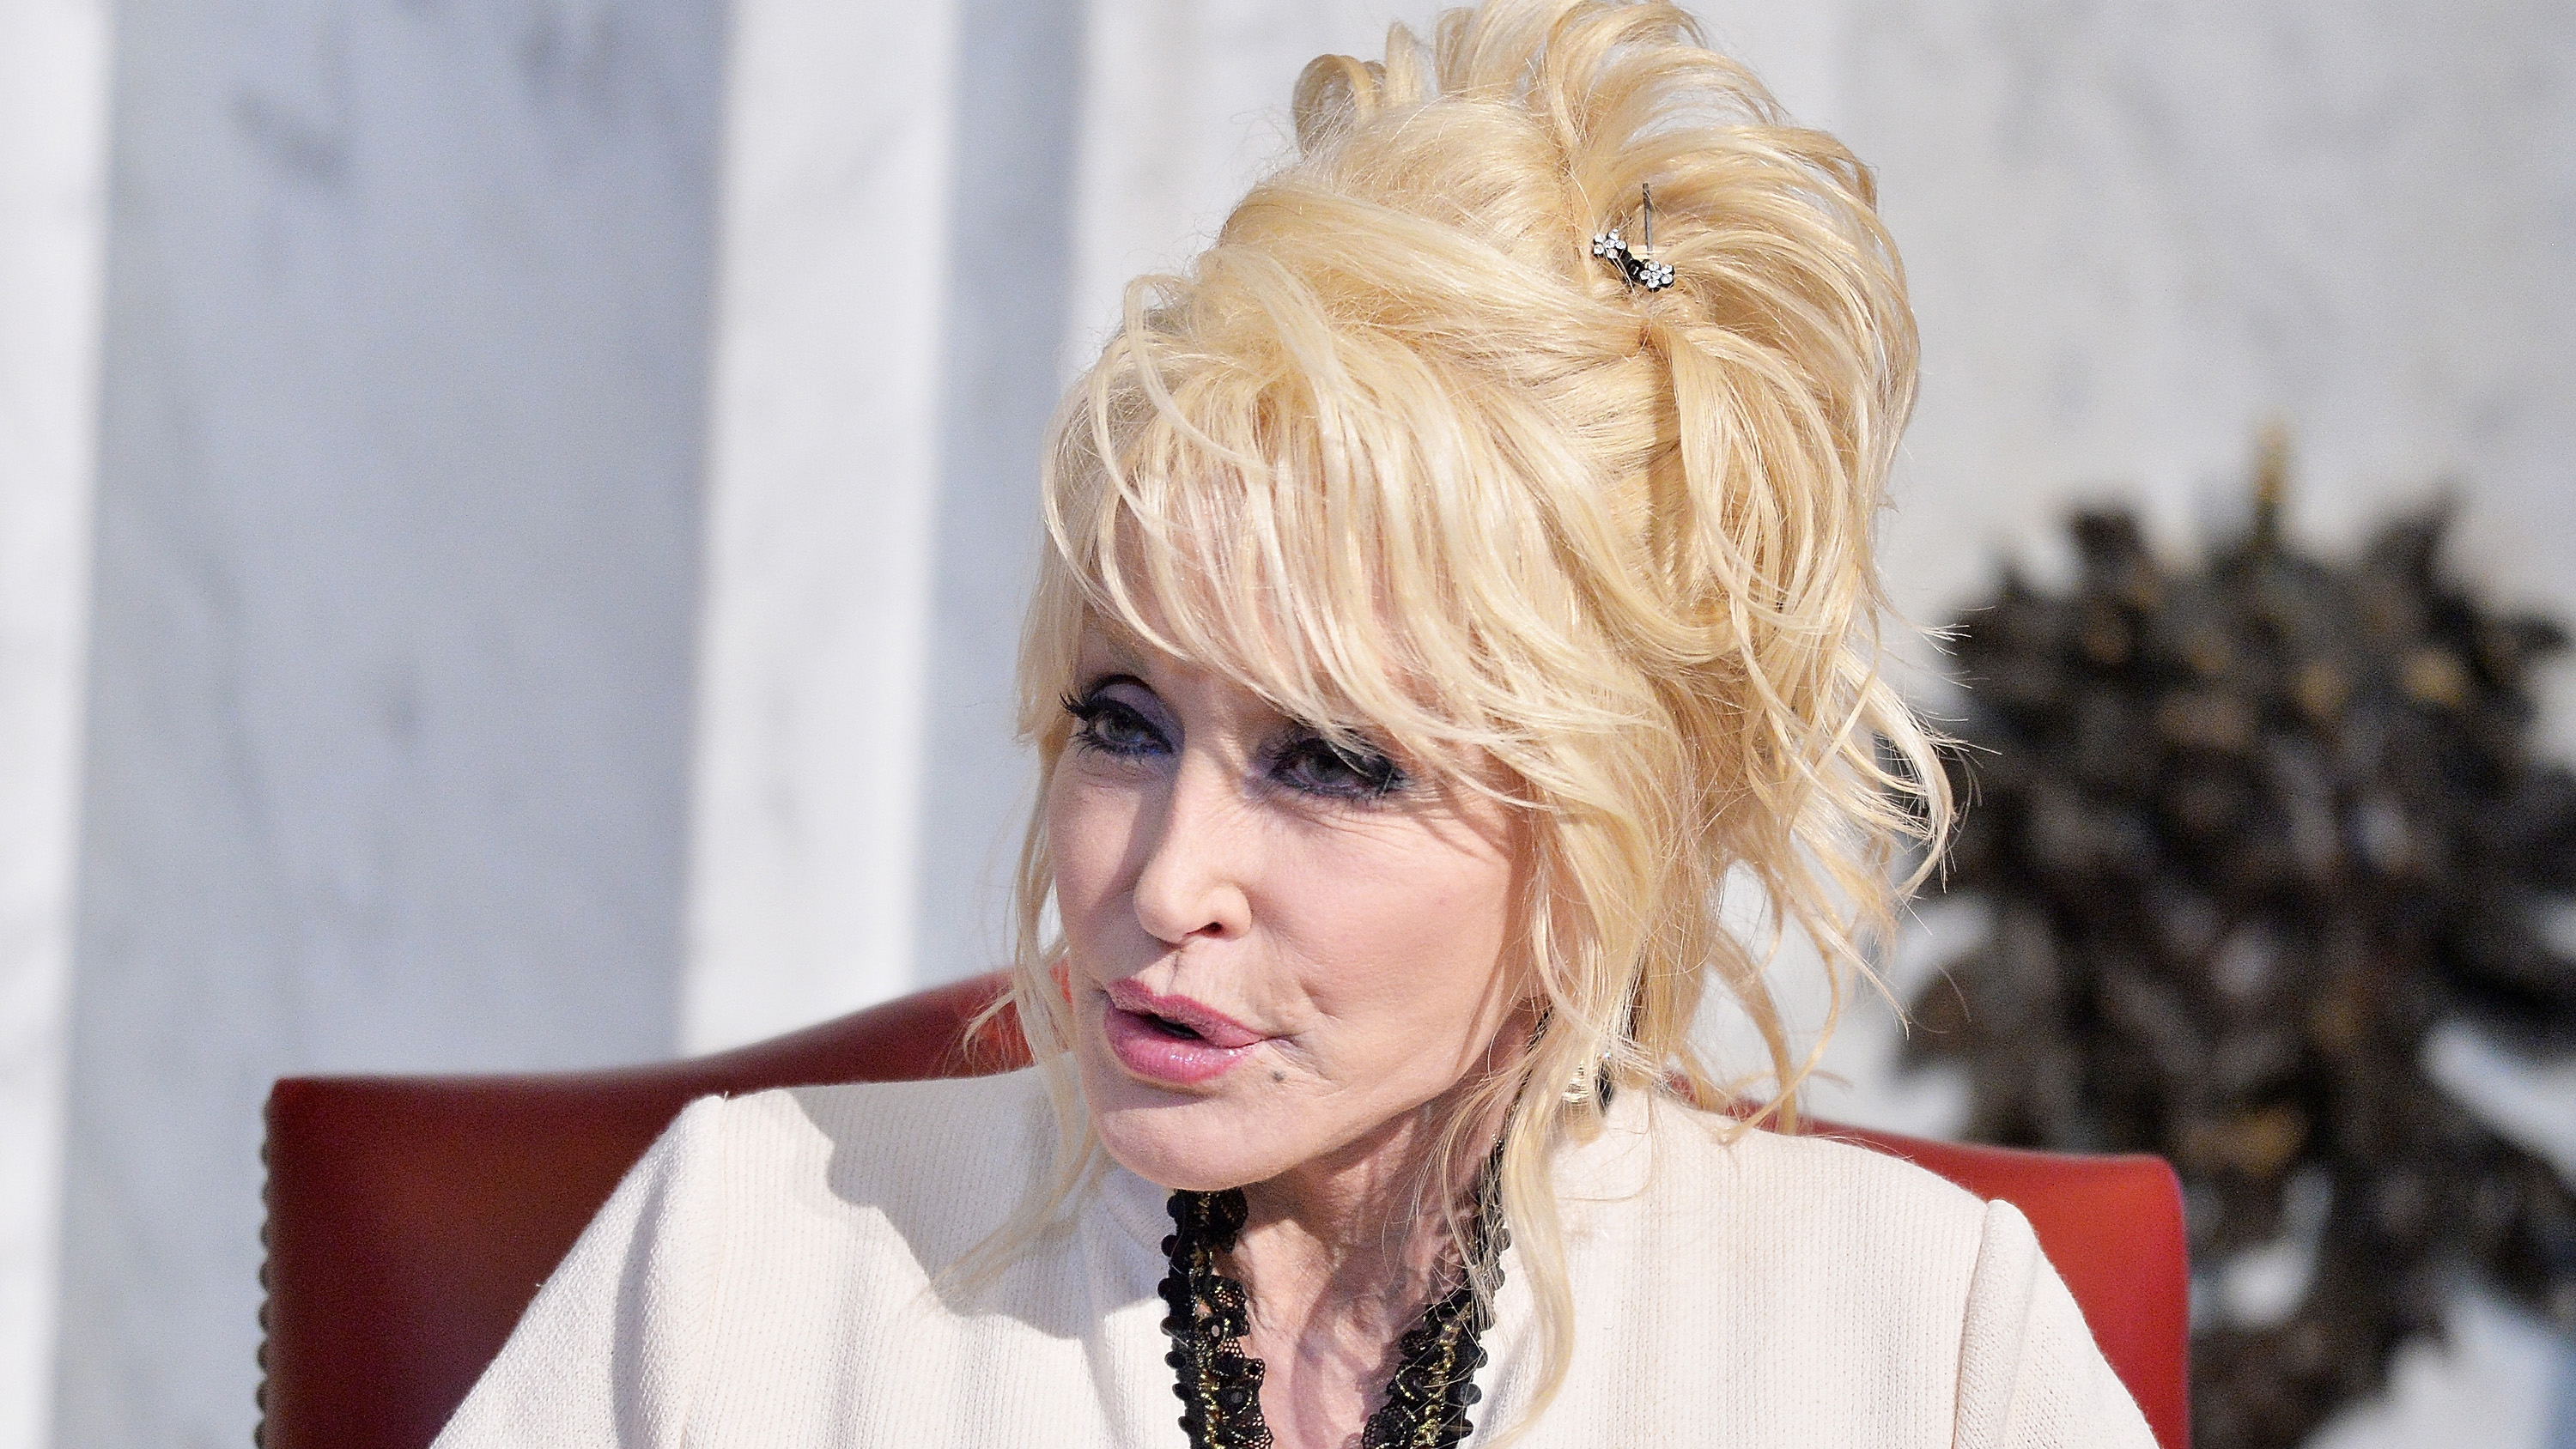 Dolly Parton And Carl Dean Reportedly Headed For Divorce